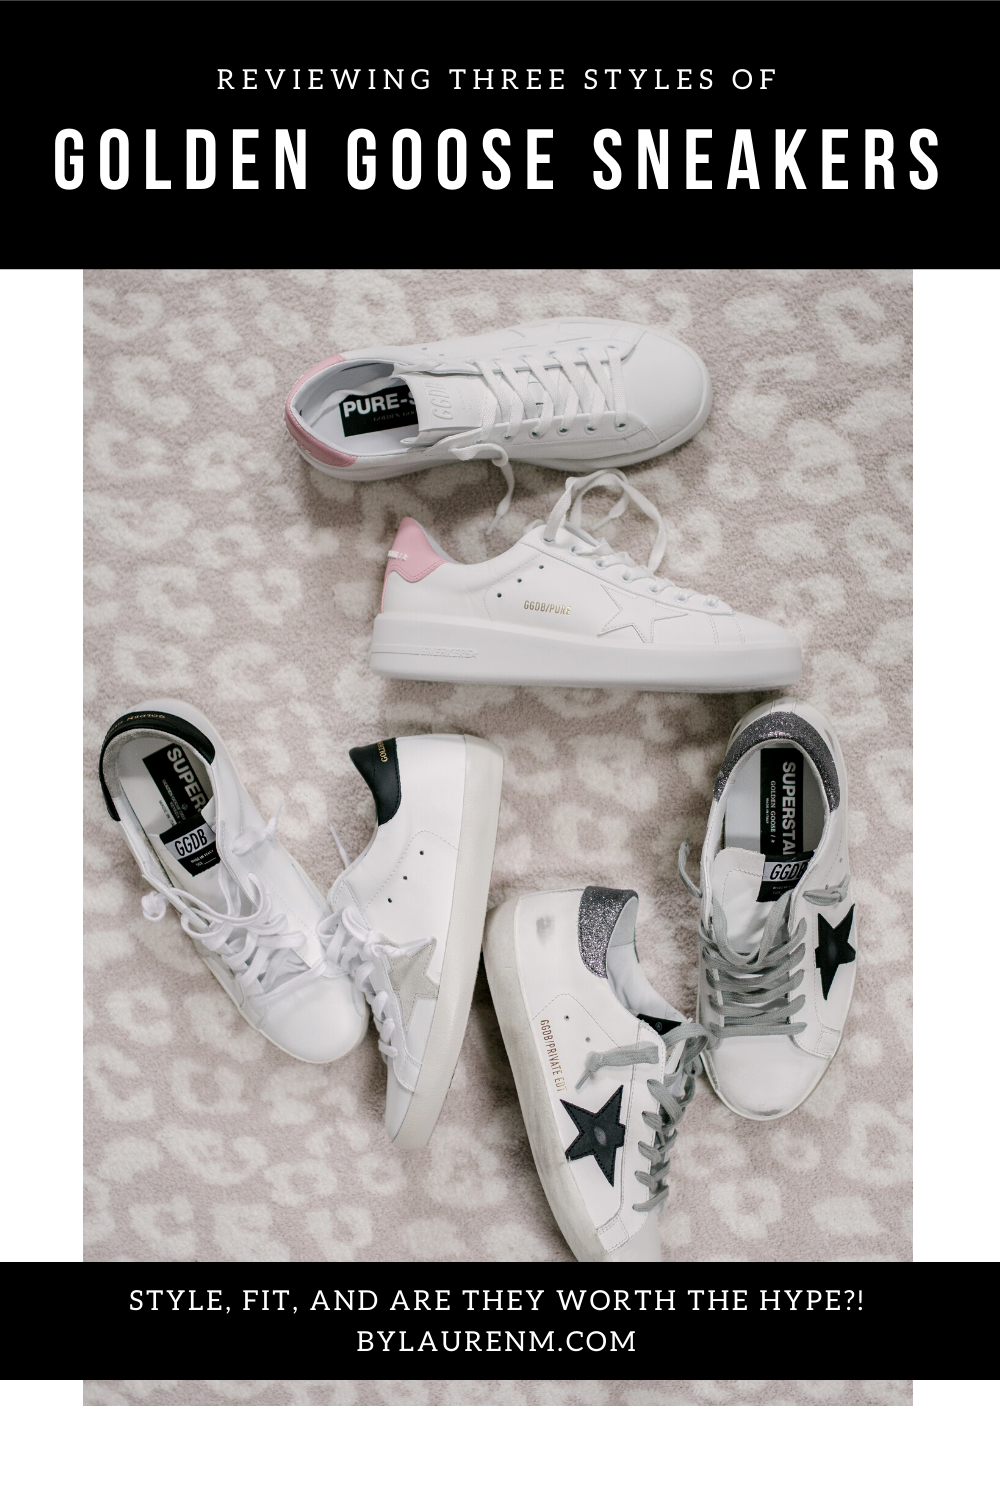 Virginia blogger, Lauren Dix, tries on and compares three styles of GG sneakers in her Golden Goose Sneakers review! Golden Goose Superstars, non distressed superstars, and Purestars reviewed!